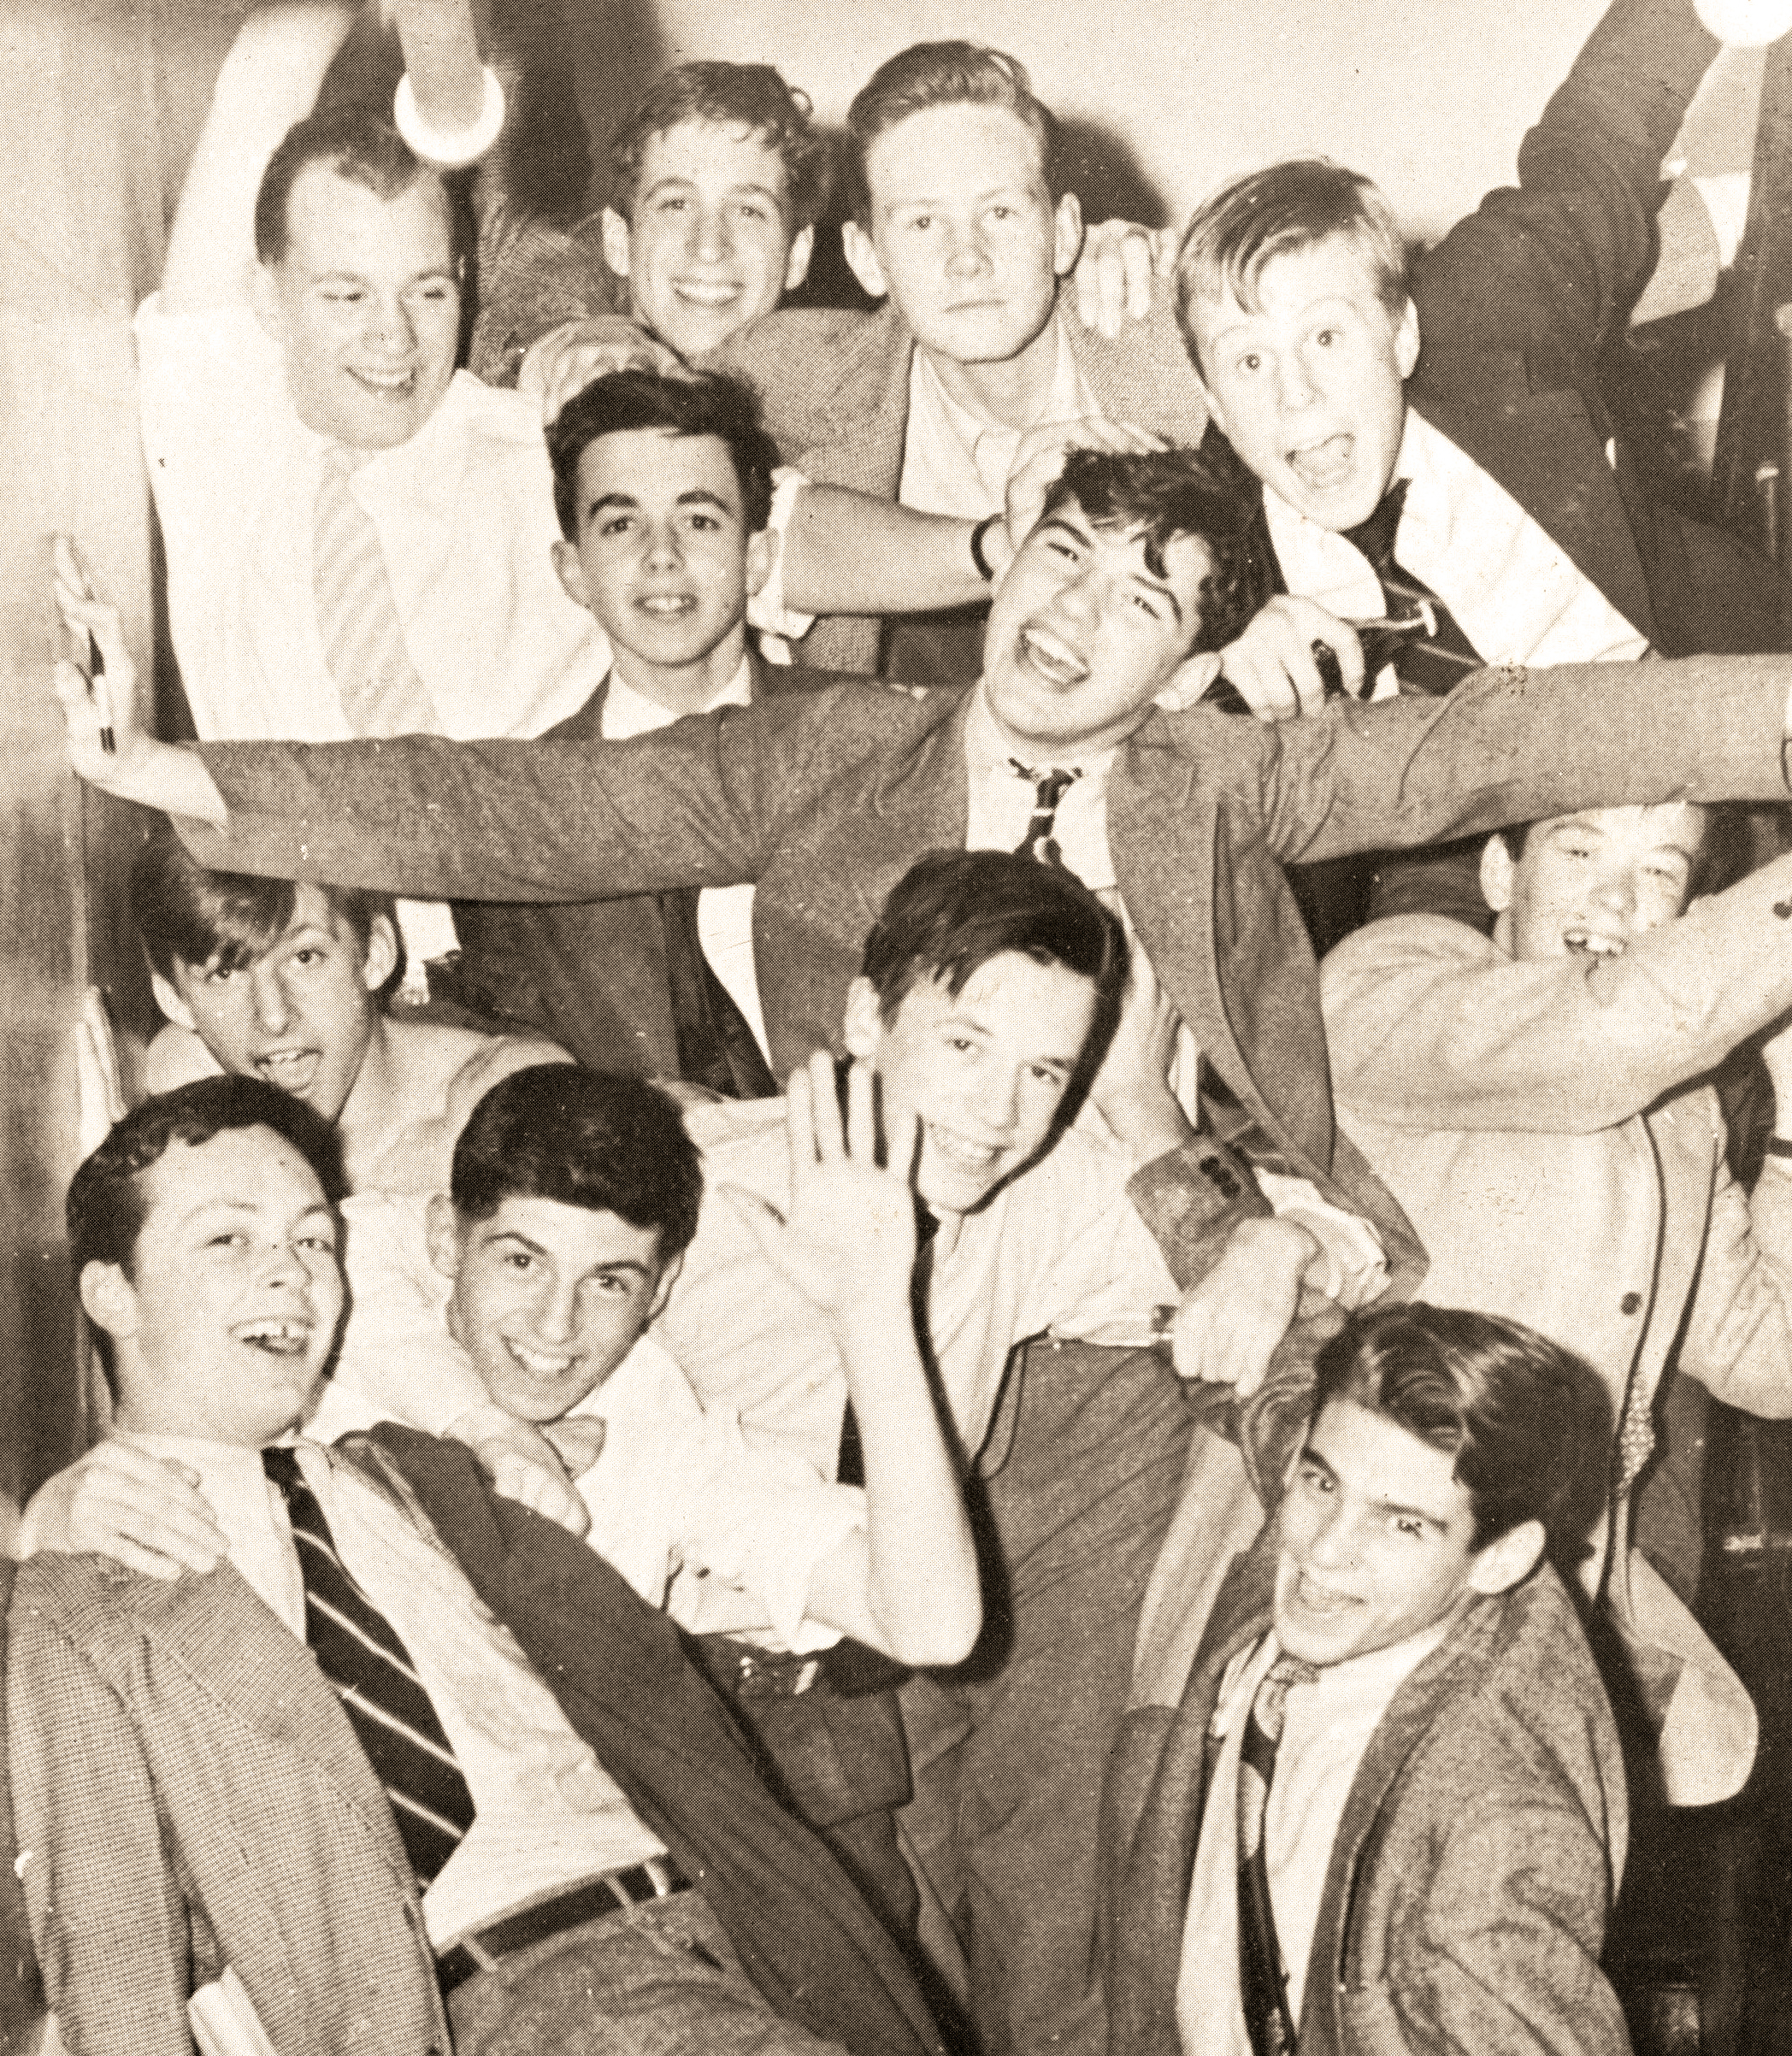 Mark Cluett '51 shares a Third Form photo taken by Charlie Friend '51. (R. to l.) top: Mike Metcalf, Dan Ford, Ebby Gerry, George Caldwell; second row: Peter Elliman, Mike Humphreys, Peter Stearns; third row: Ken Ives, Warren Wilson; fourth row: Fergie Reid, Peter Winans, Tadger Webster.